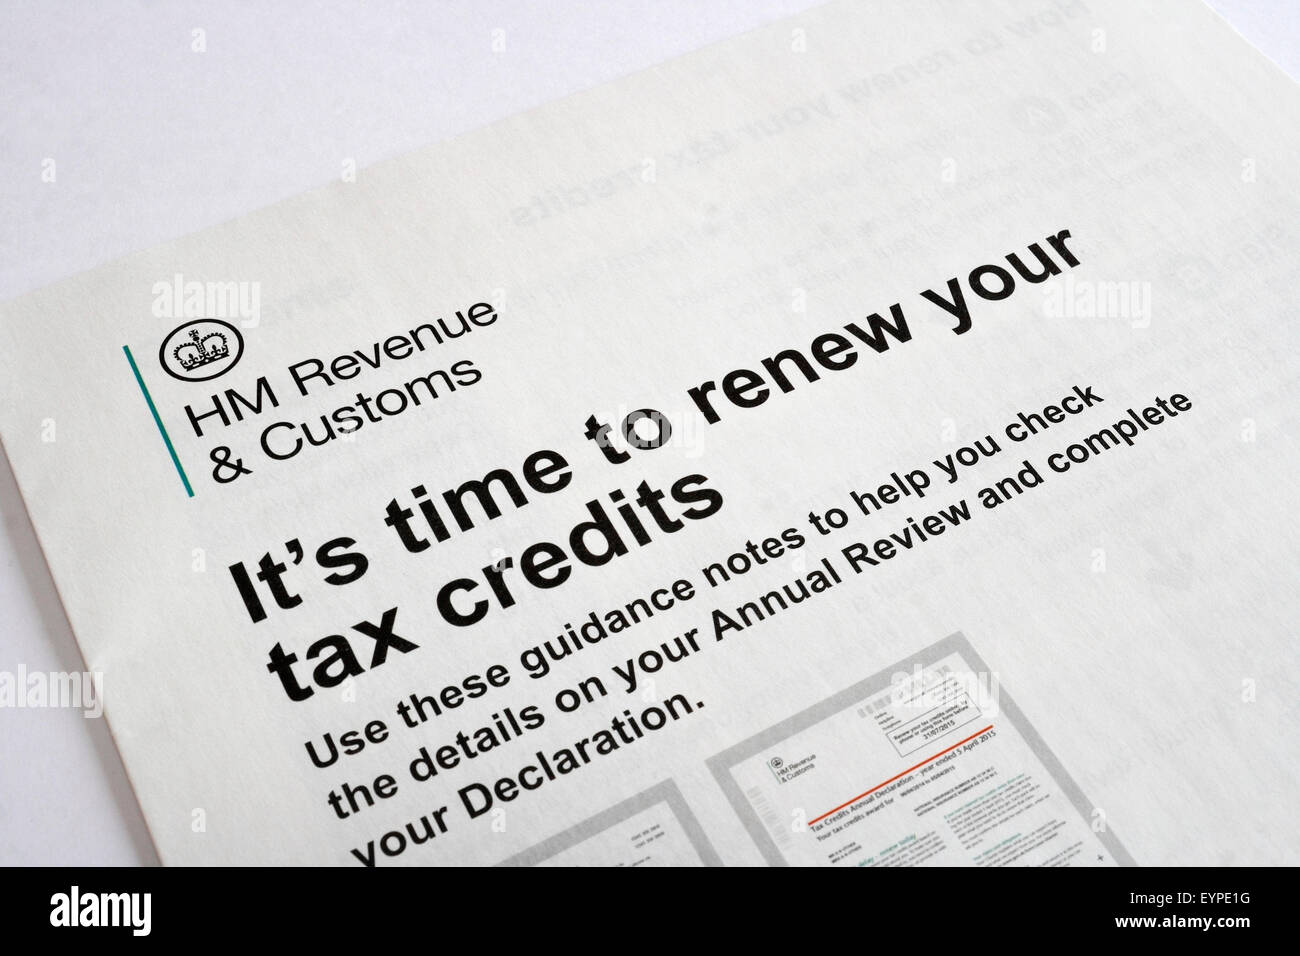 Tax Credits renew form UK - Stock Image